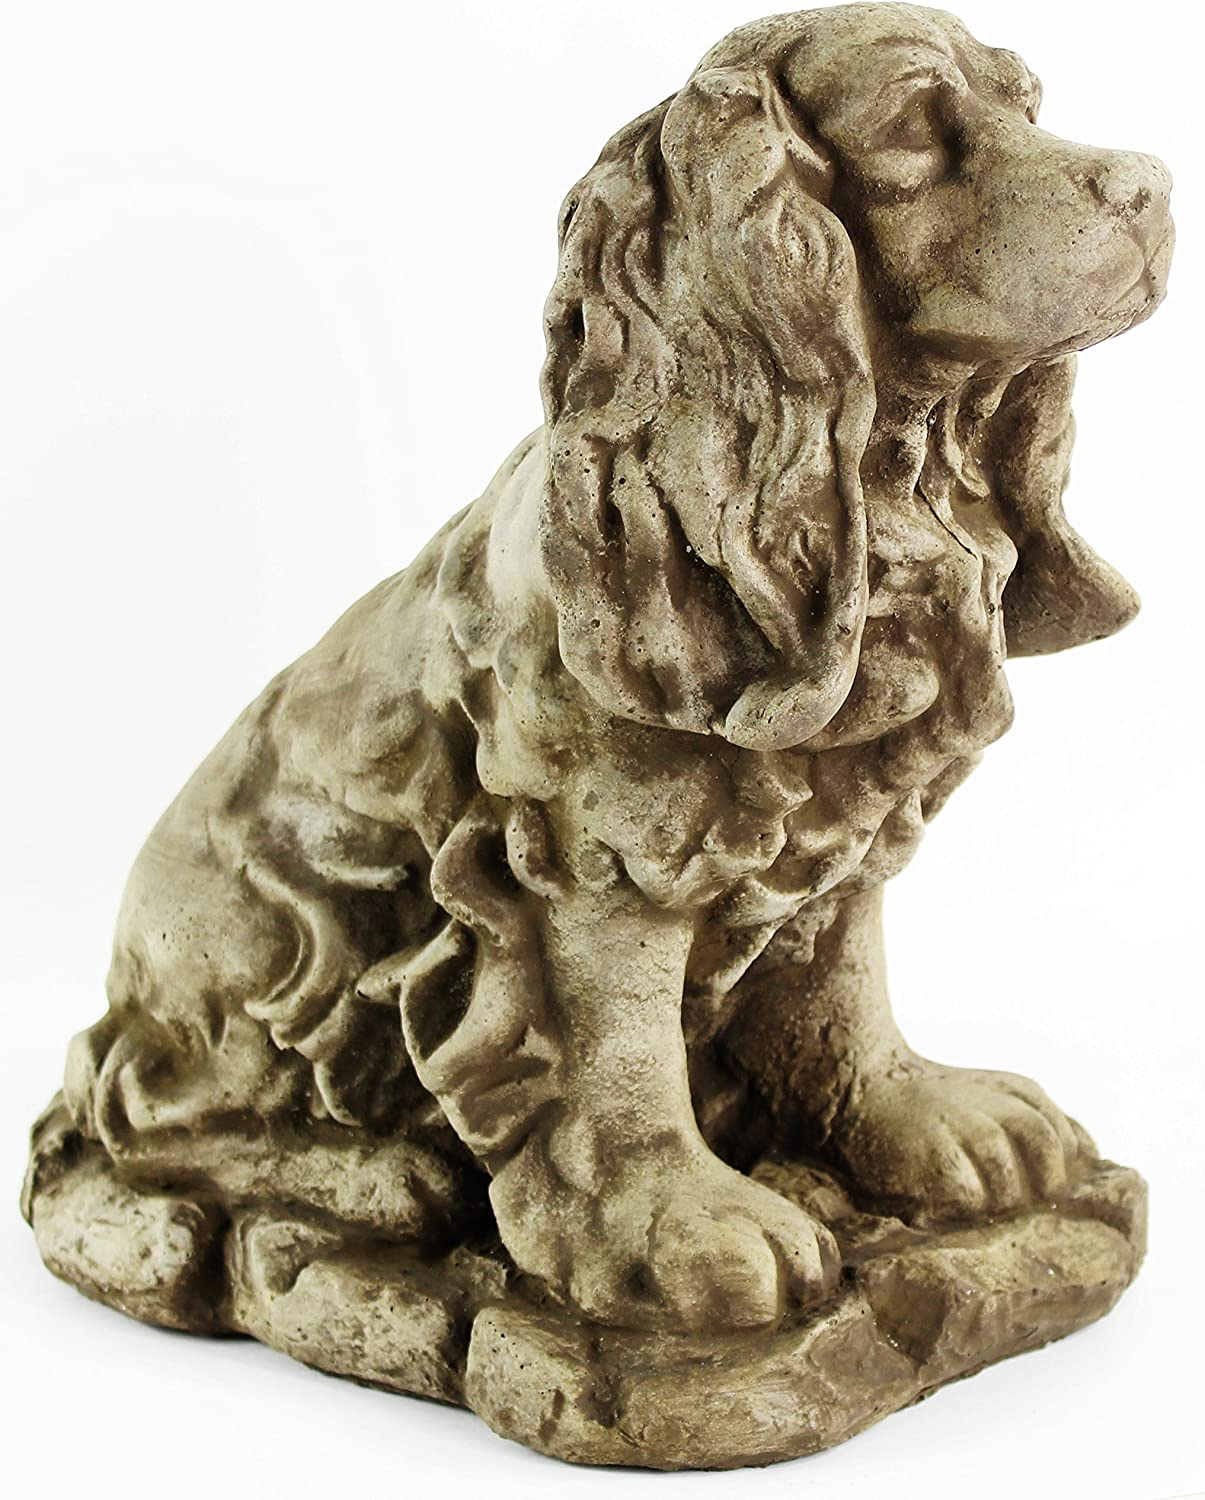 Dog Statue Cocker Spaniel Outdoor Garden Statues Puppy Cement Dog Figure Doggy Sculpture